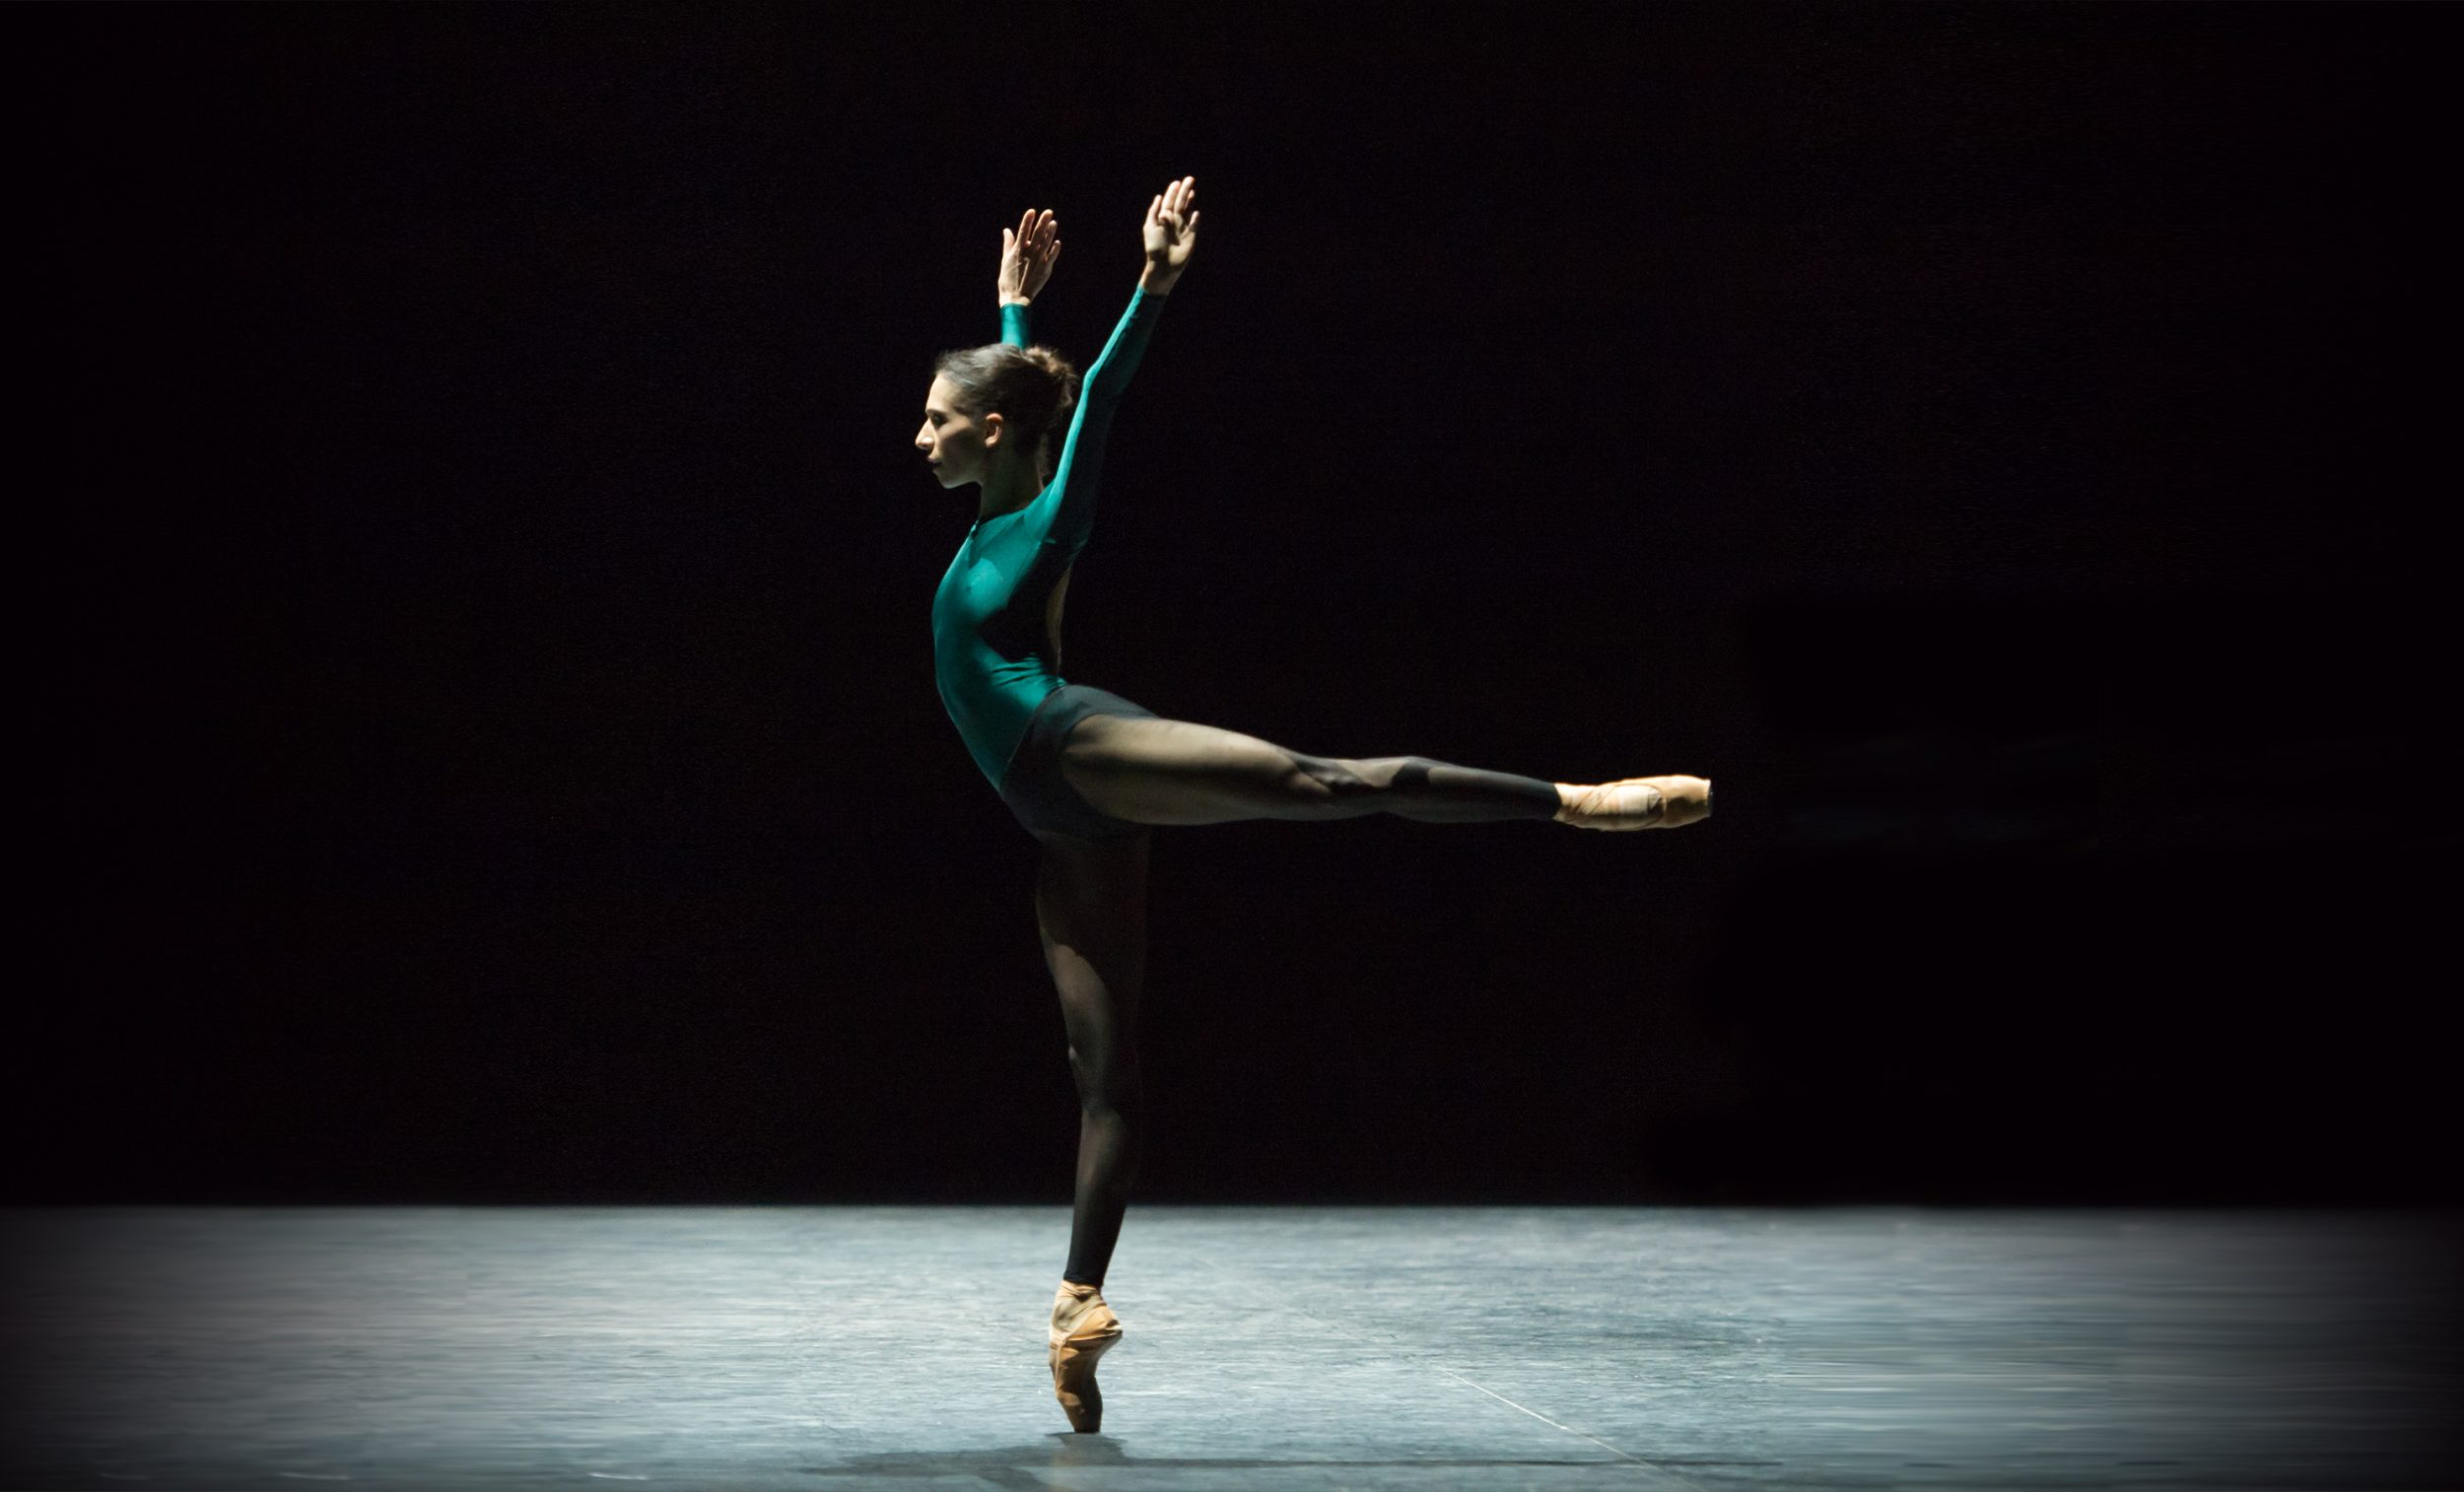 Begona-Cao-in-In-the-Middle,-Somewhat-Elevated,-English-National-Ballet's-Modern-Masters-(C)-Photography-by-ASH